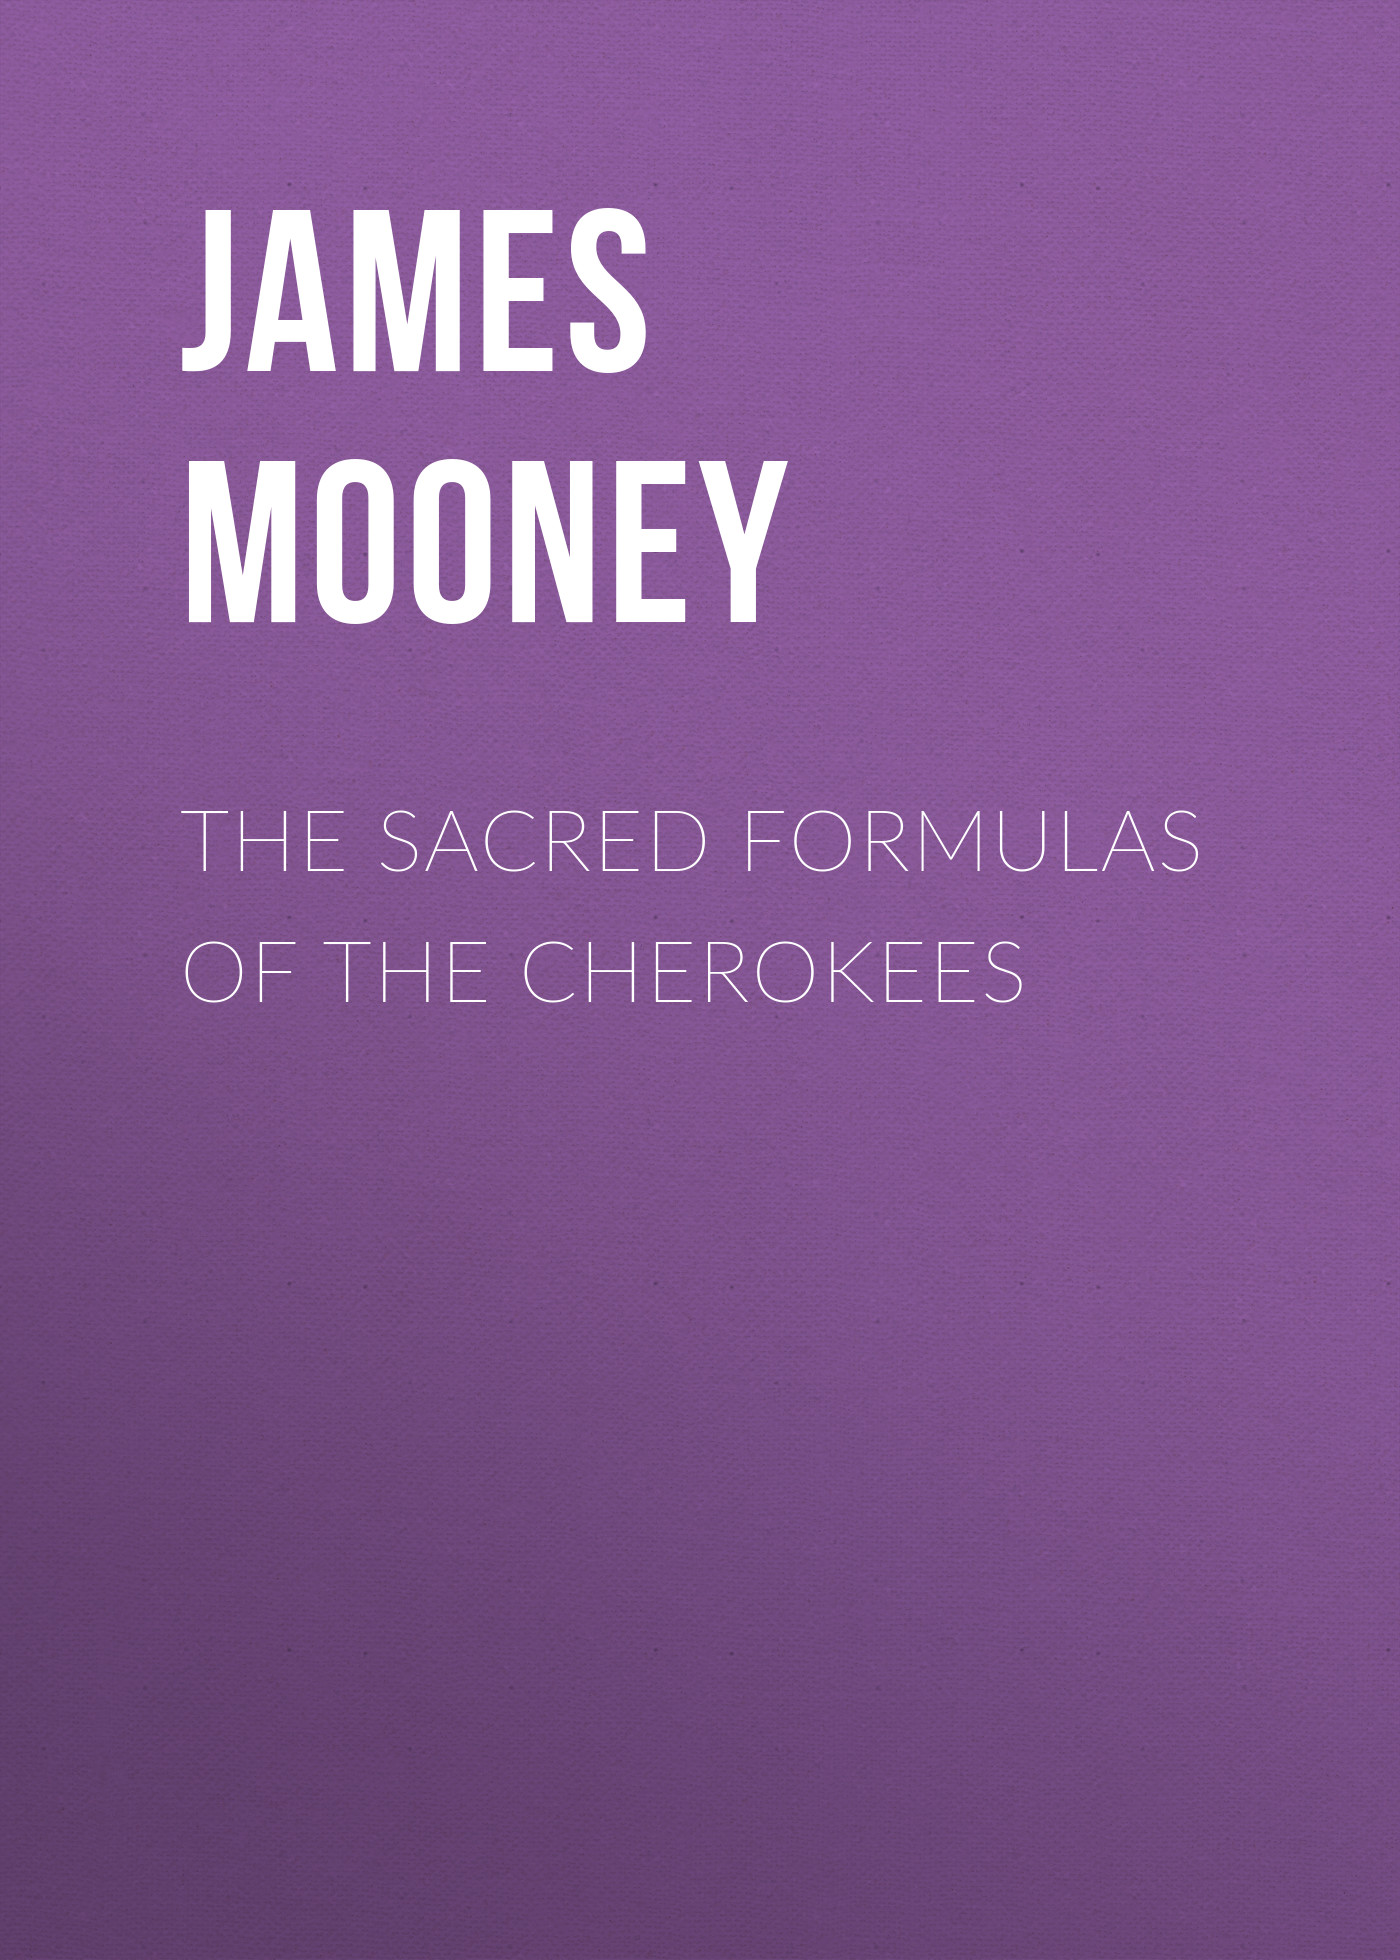 James Mooney The Sacred Formulas of the Cherokees